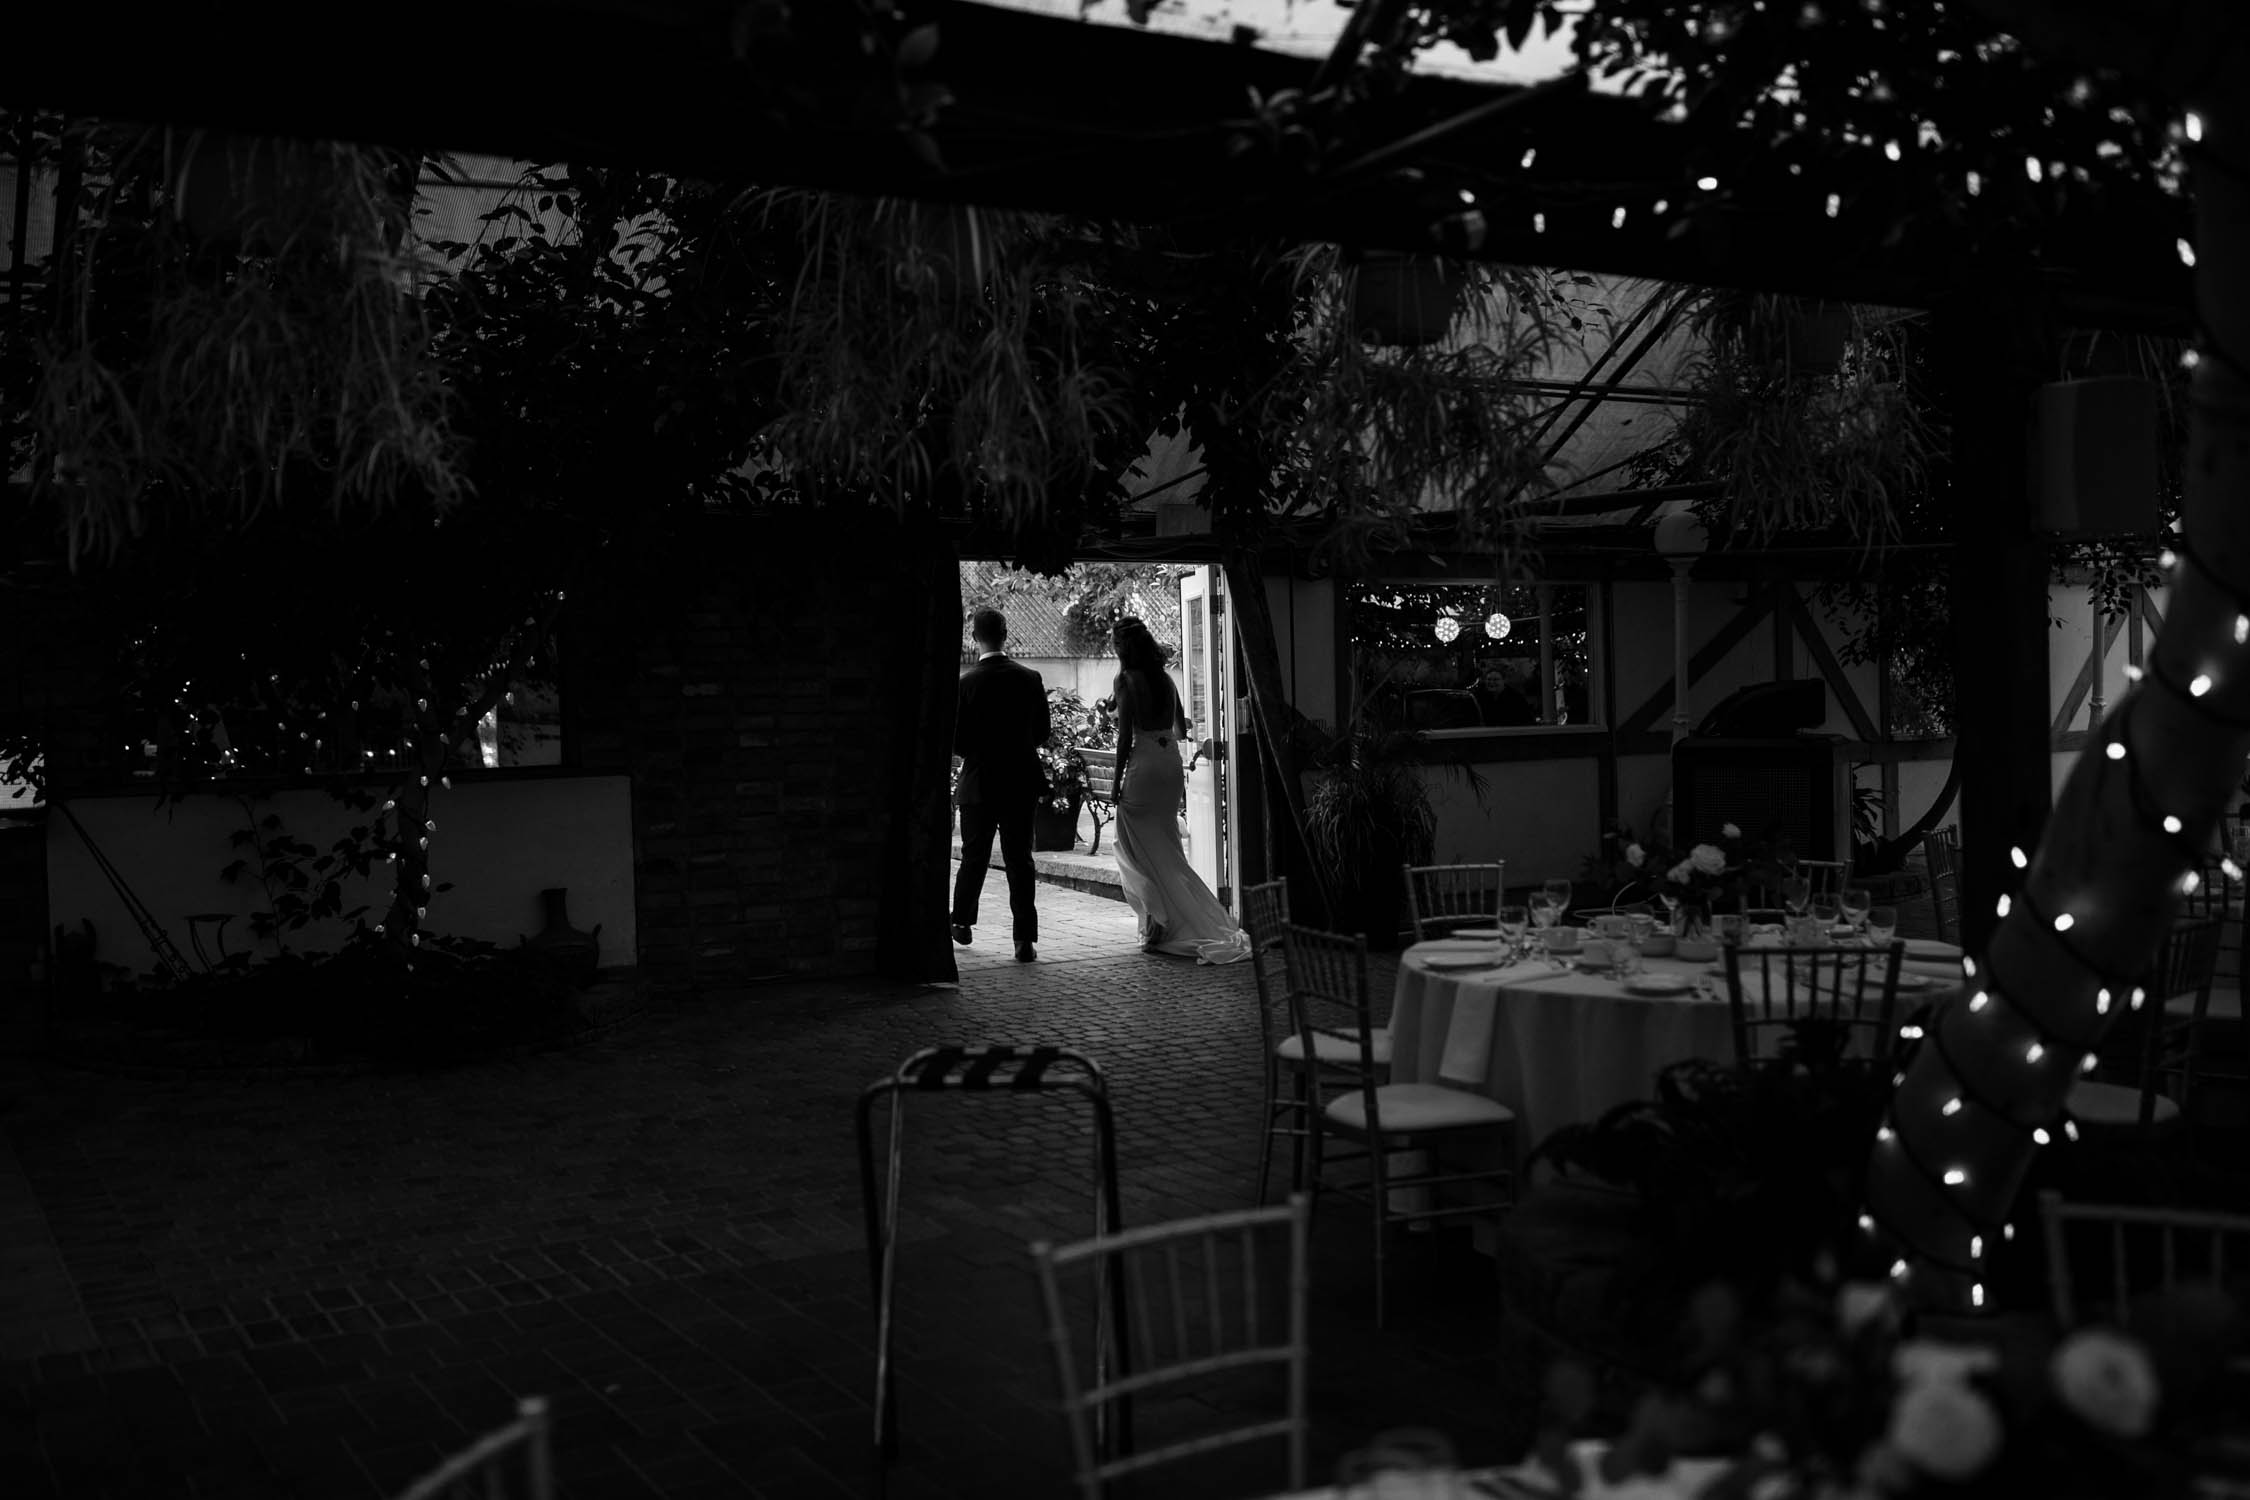 Bride and groom steal an intimate moment alone after wedding ceremony at Madsen's Greenhouse wedding venue in Newmarket close to Toronto